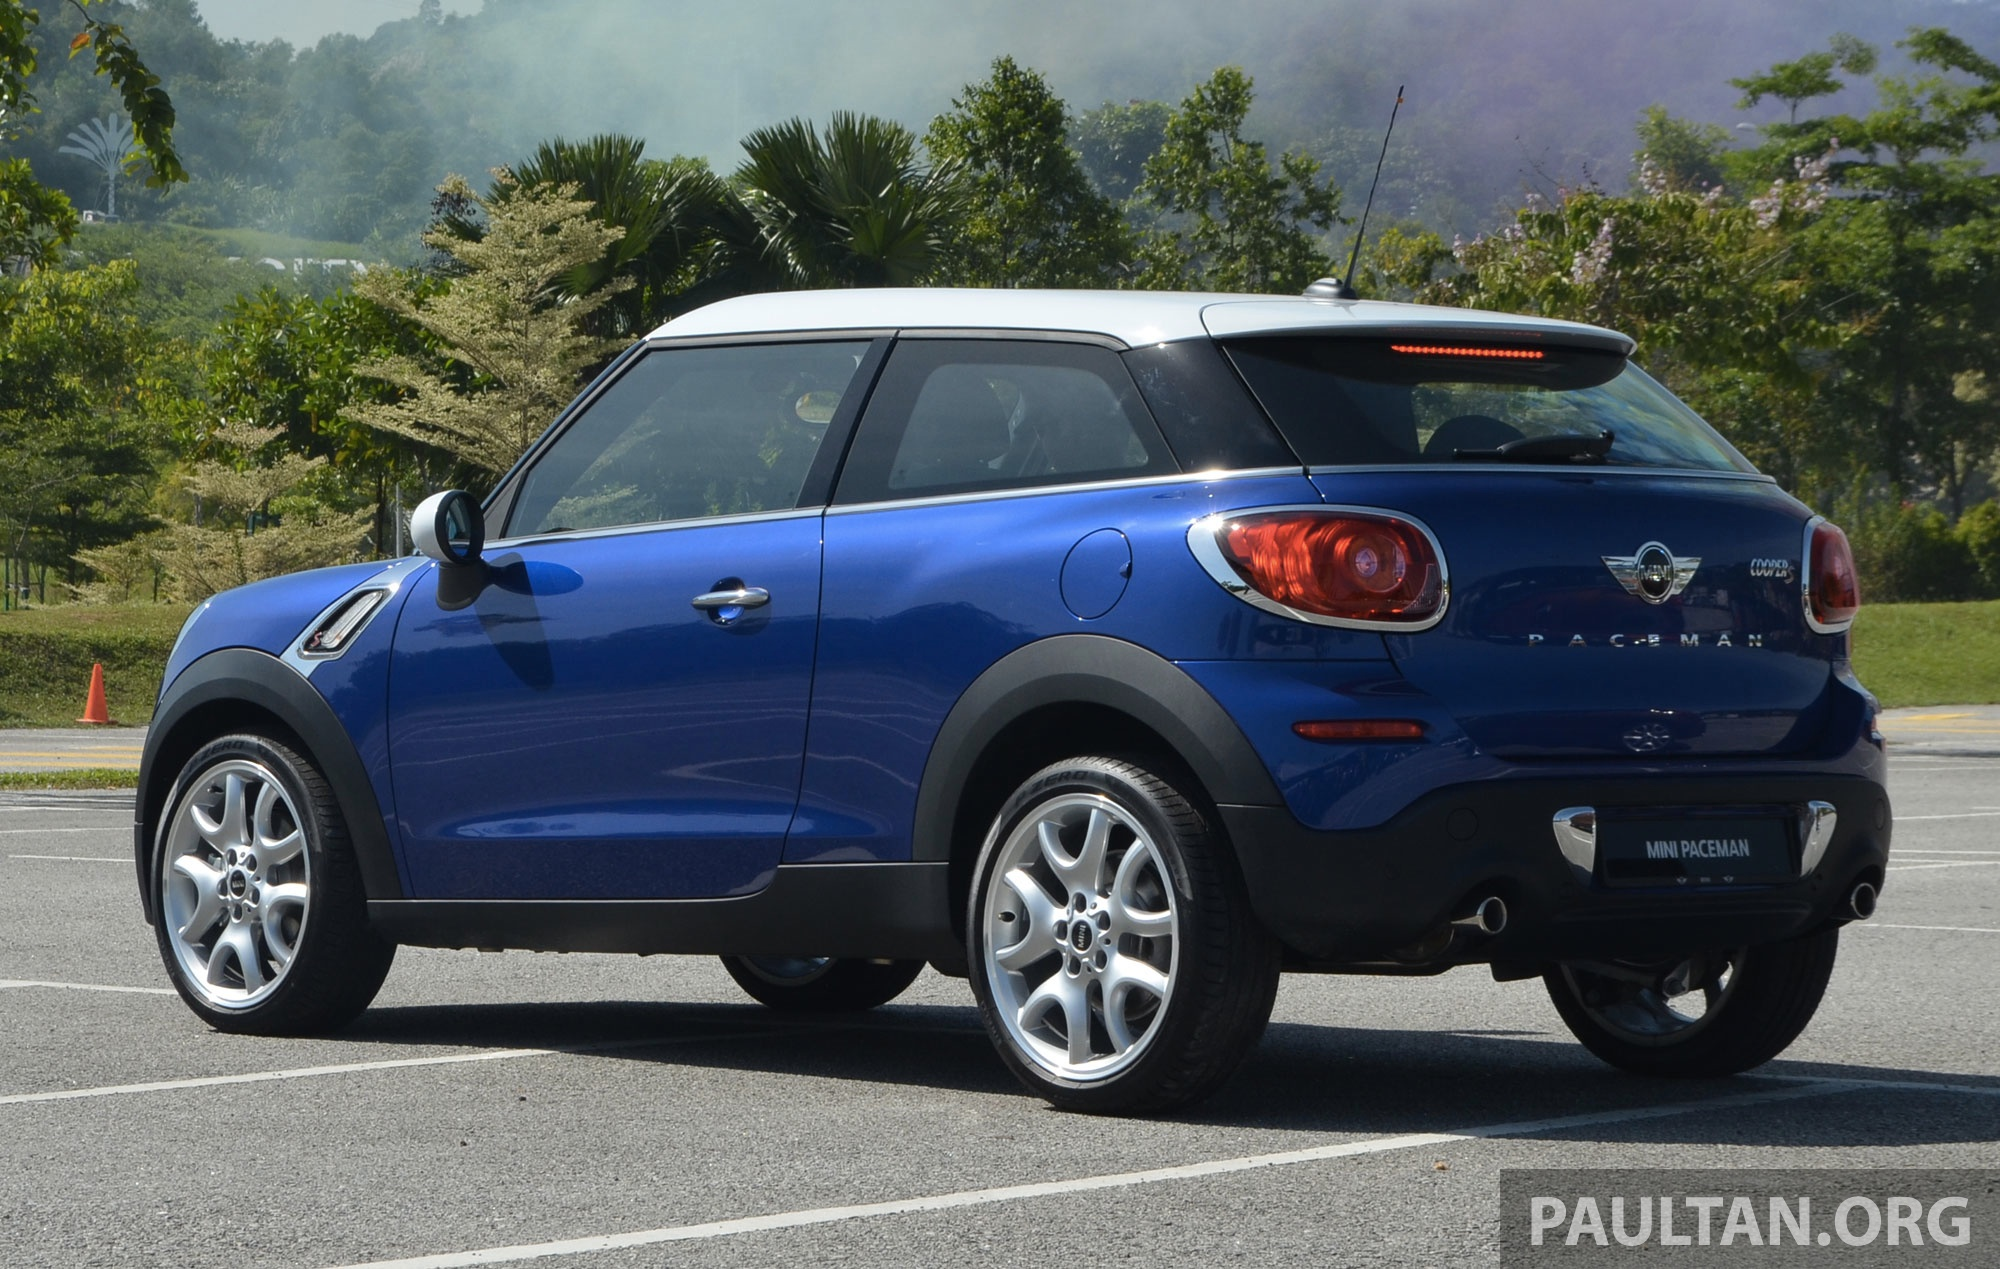 mini paceman malaysia launch cooper s for rm289k. Black Bedroom Furniture Sets. Home Design Ideas